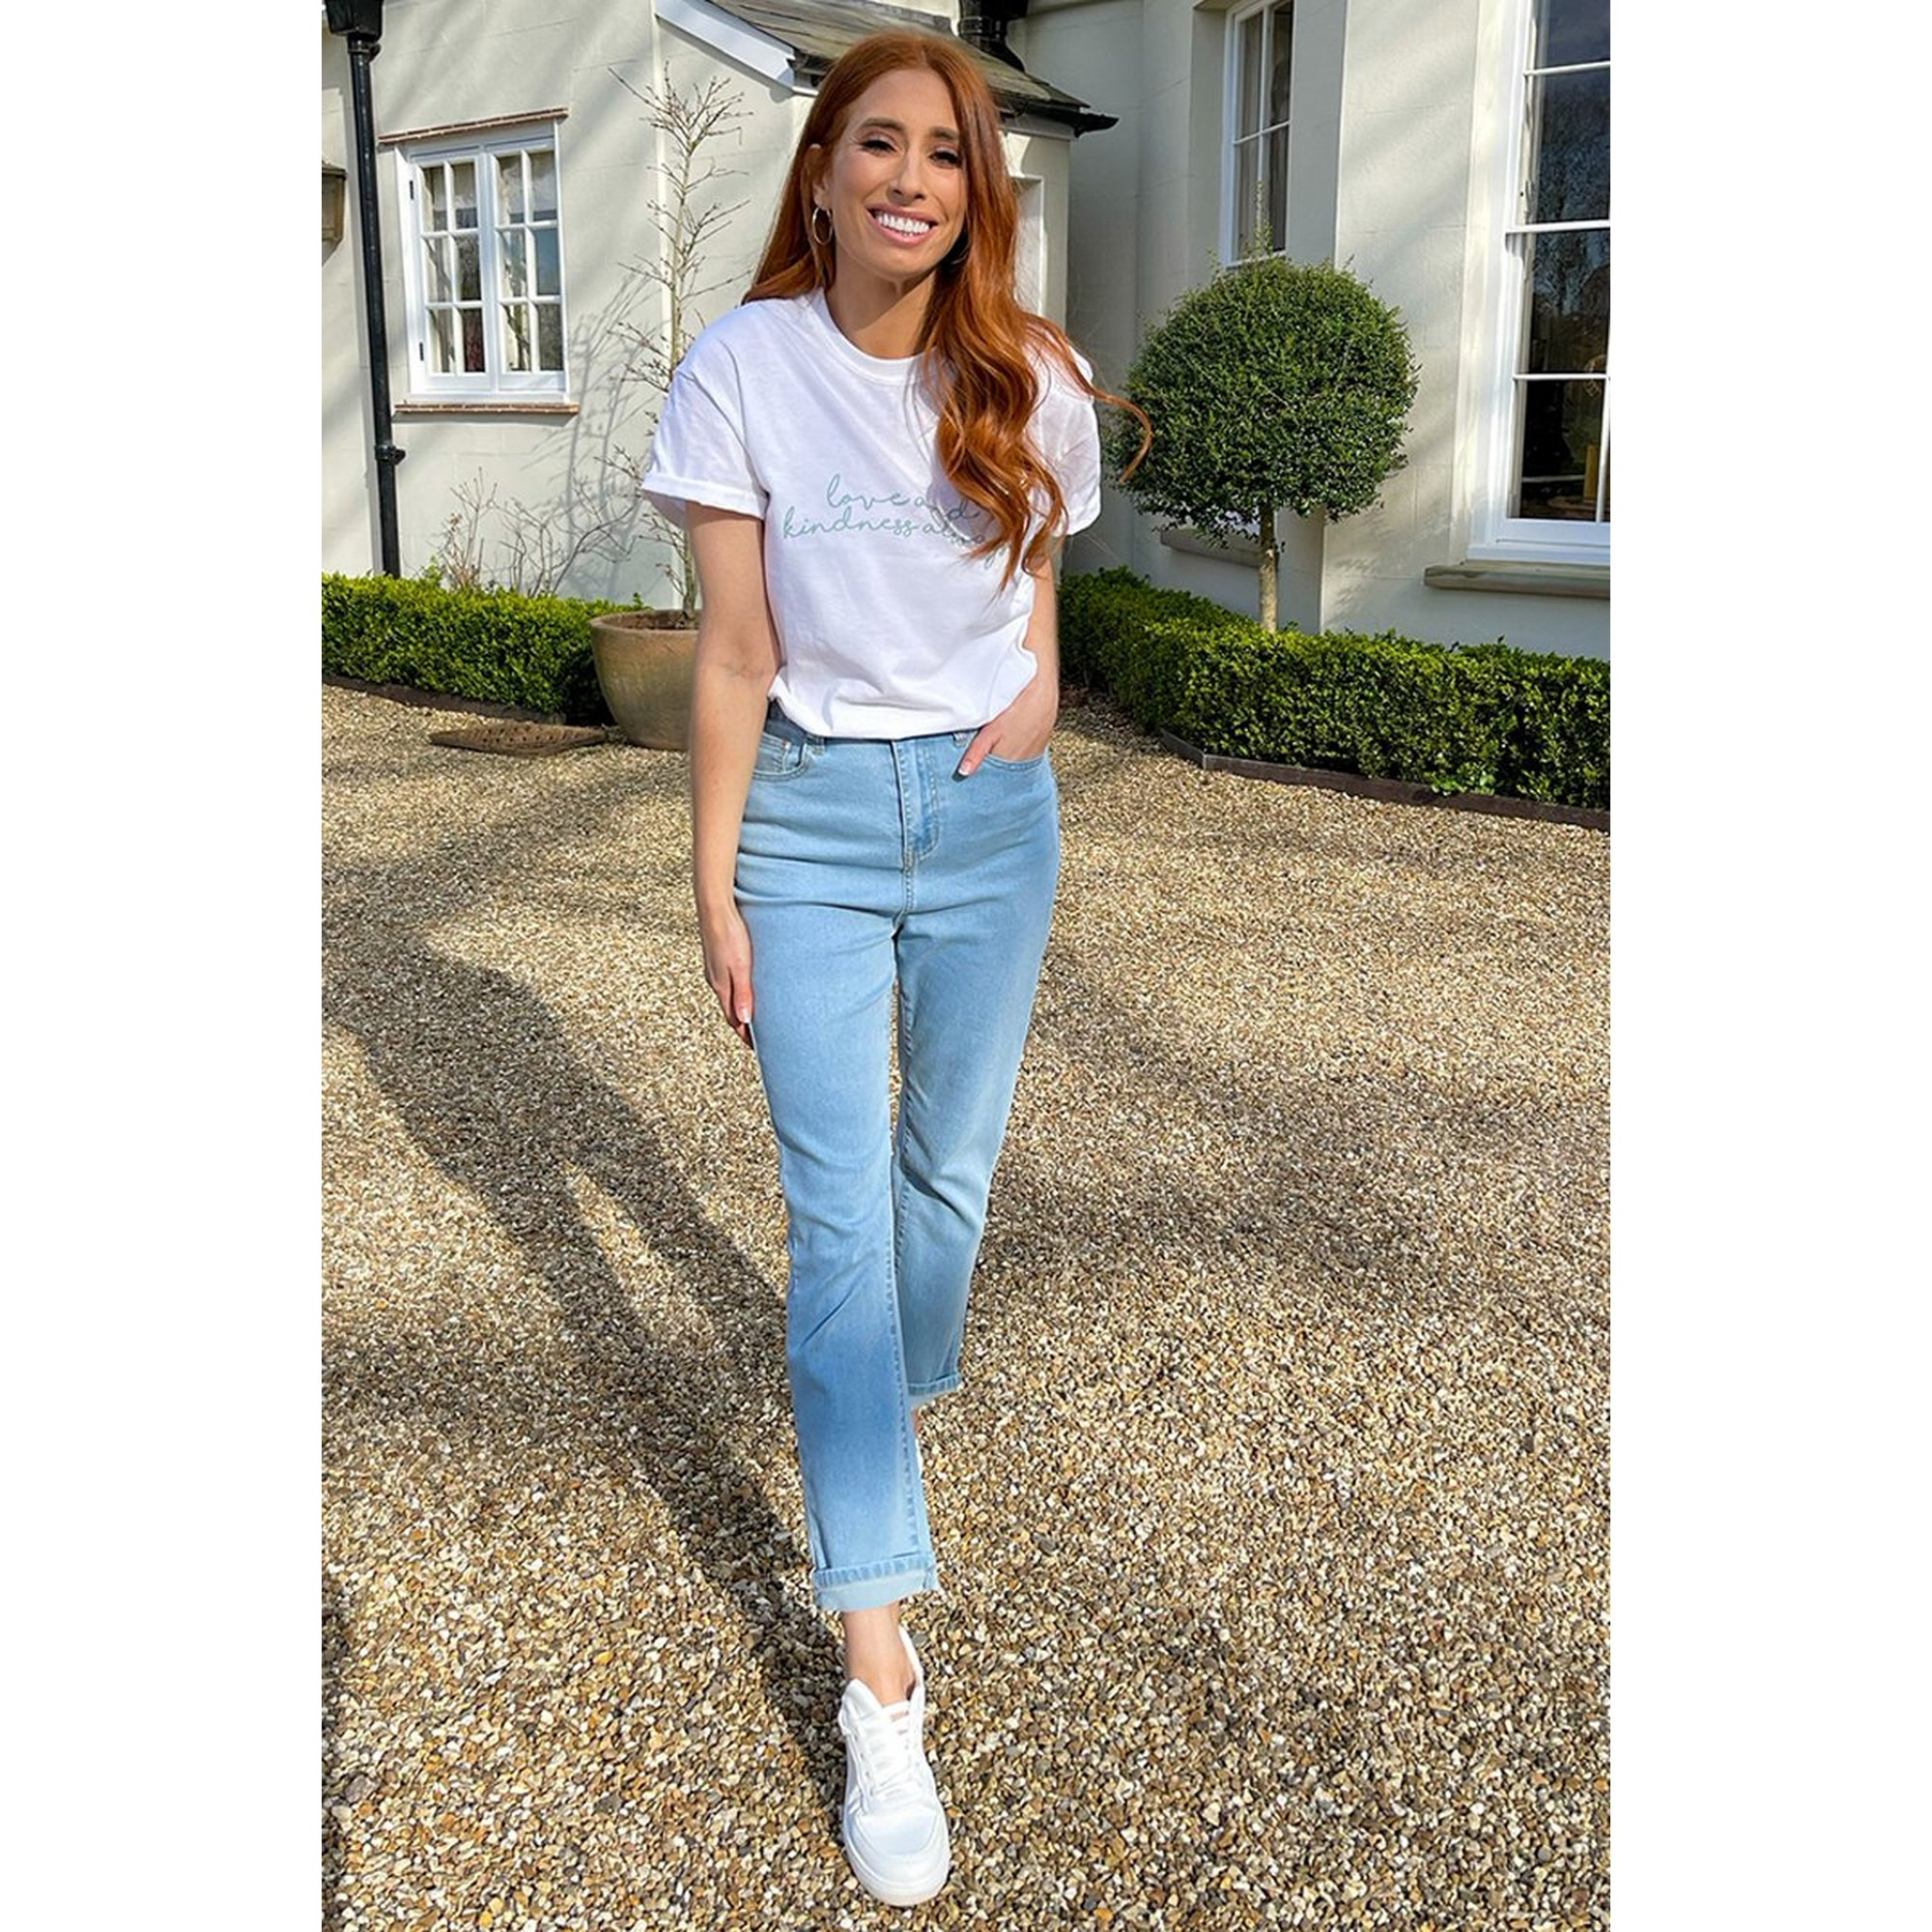 Image of Stacey Solomon Blue Denim Cropped Jeans